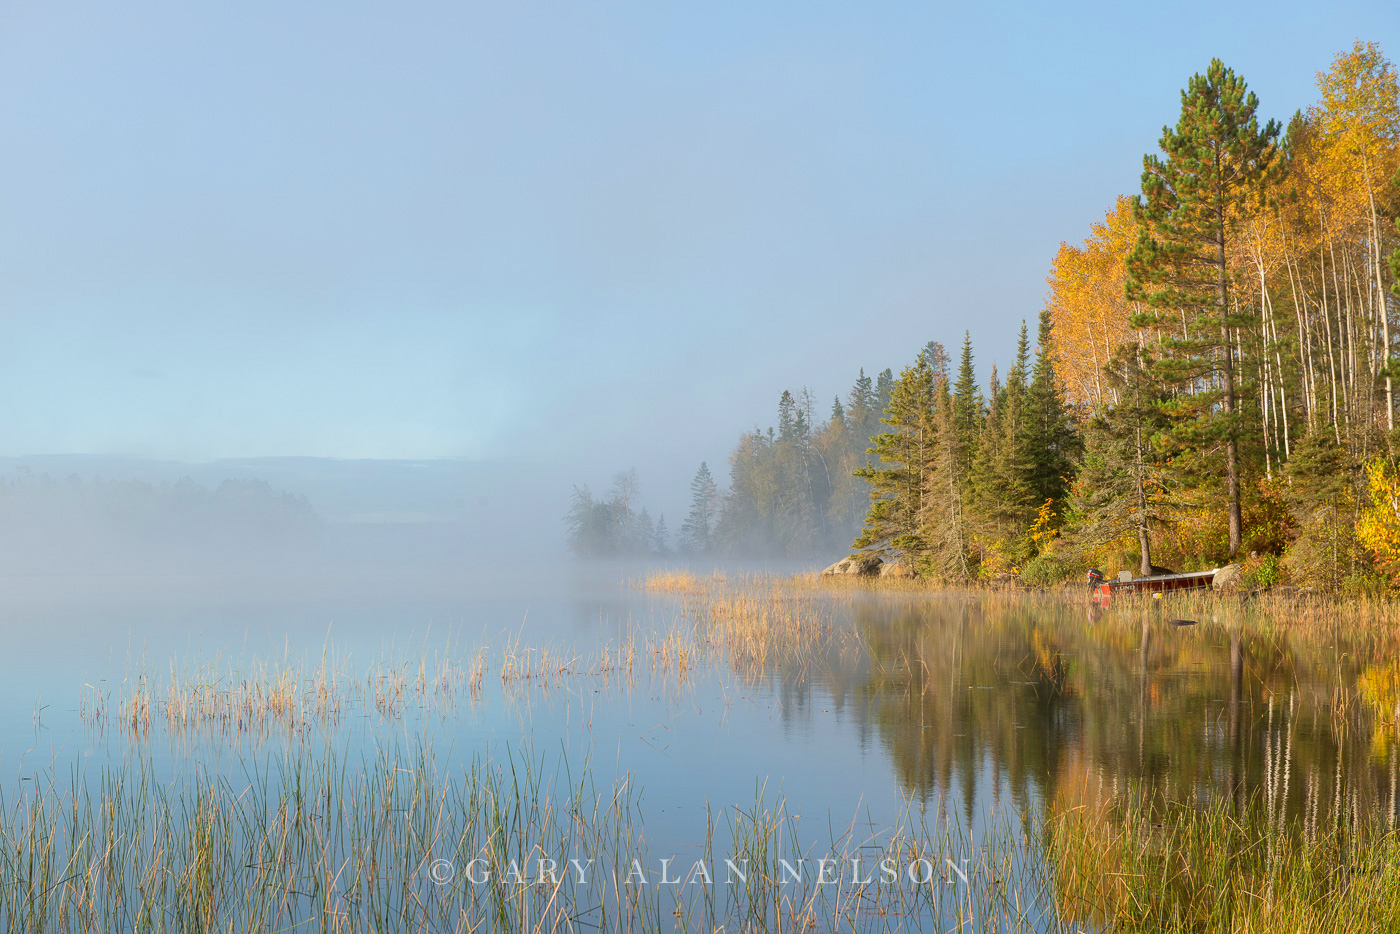 Sunrise,Superior National Forest,boundary waters,boundary waters canoe area,calm,dawn,fog,island,minnesota,national forest,reflections,water,wilderness, photo